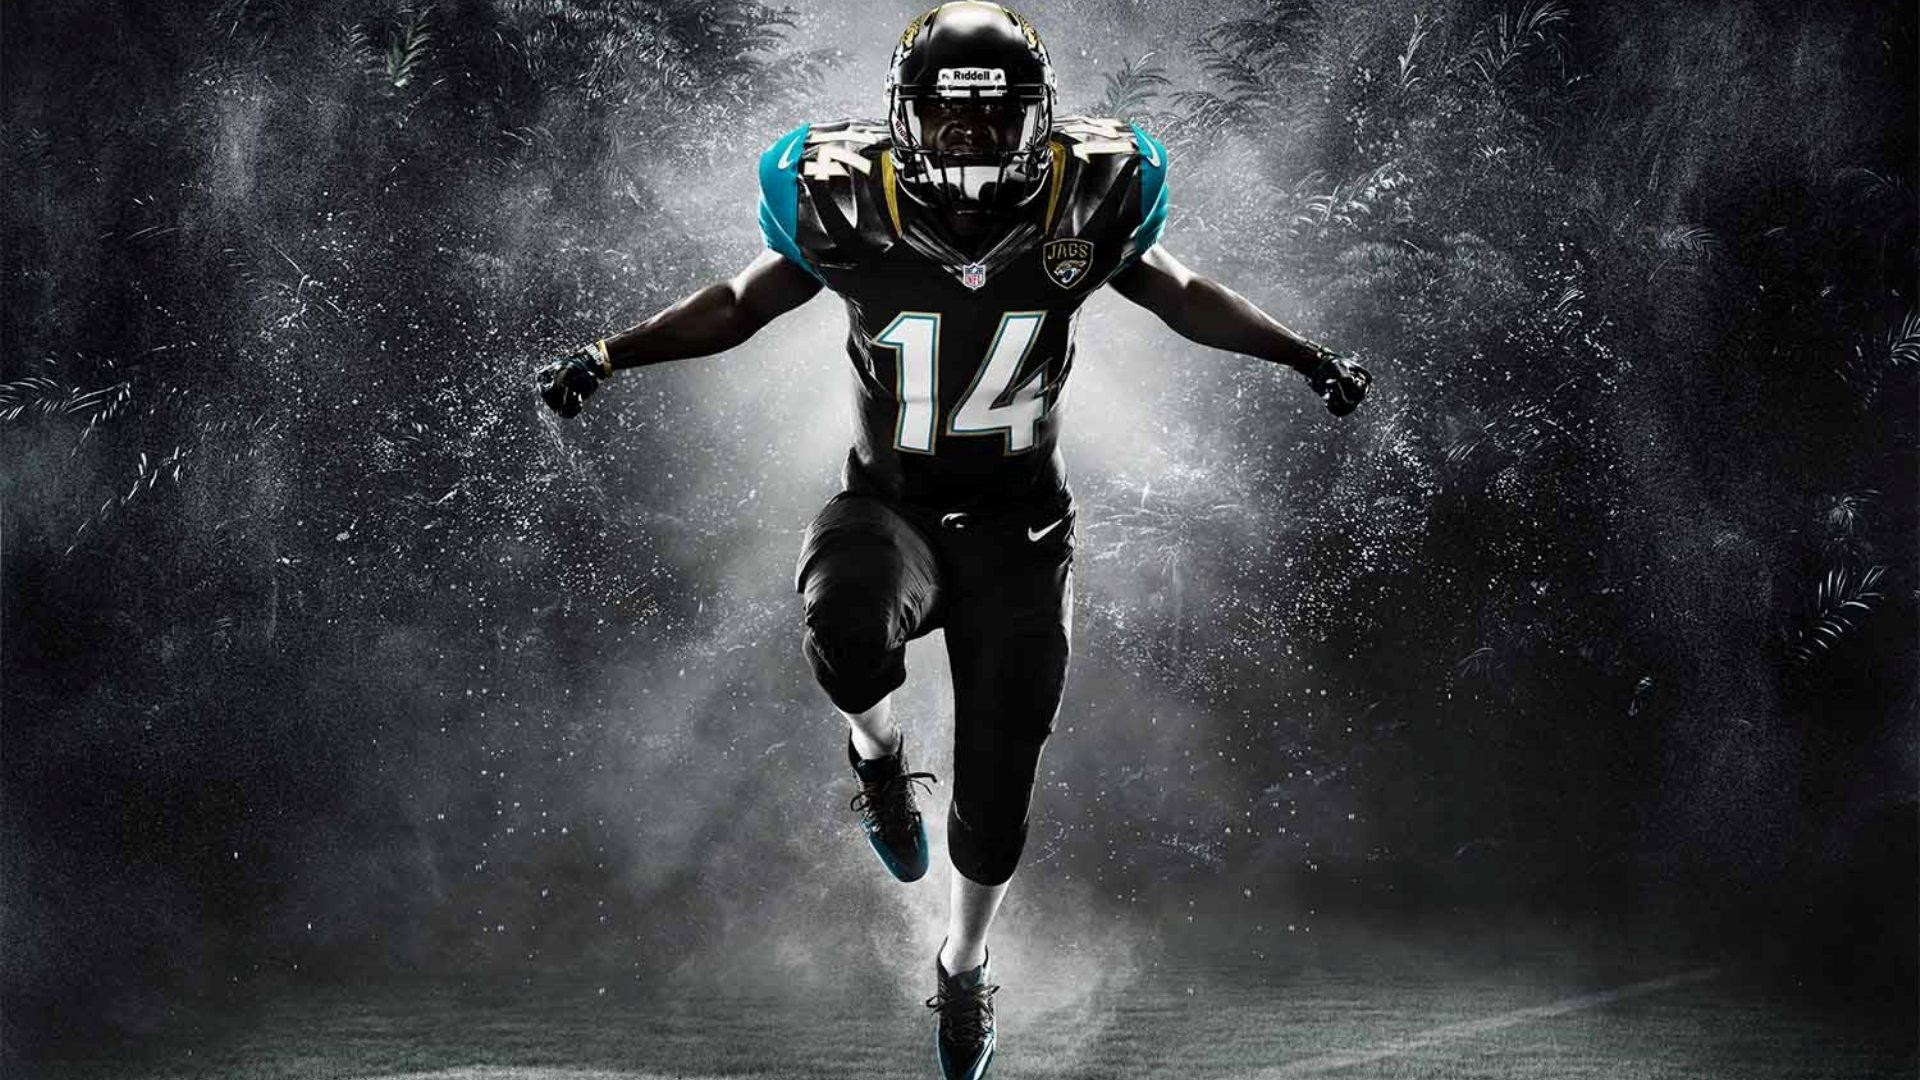 Nike American Football Wallpapers (51+ images)